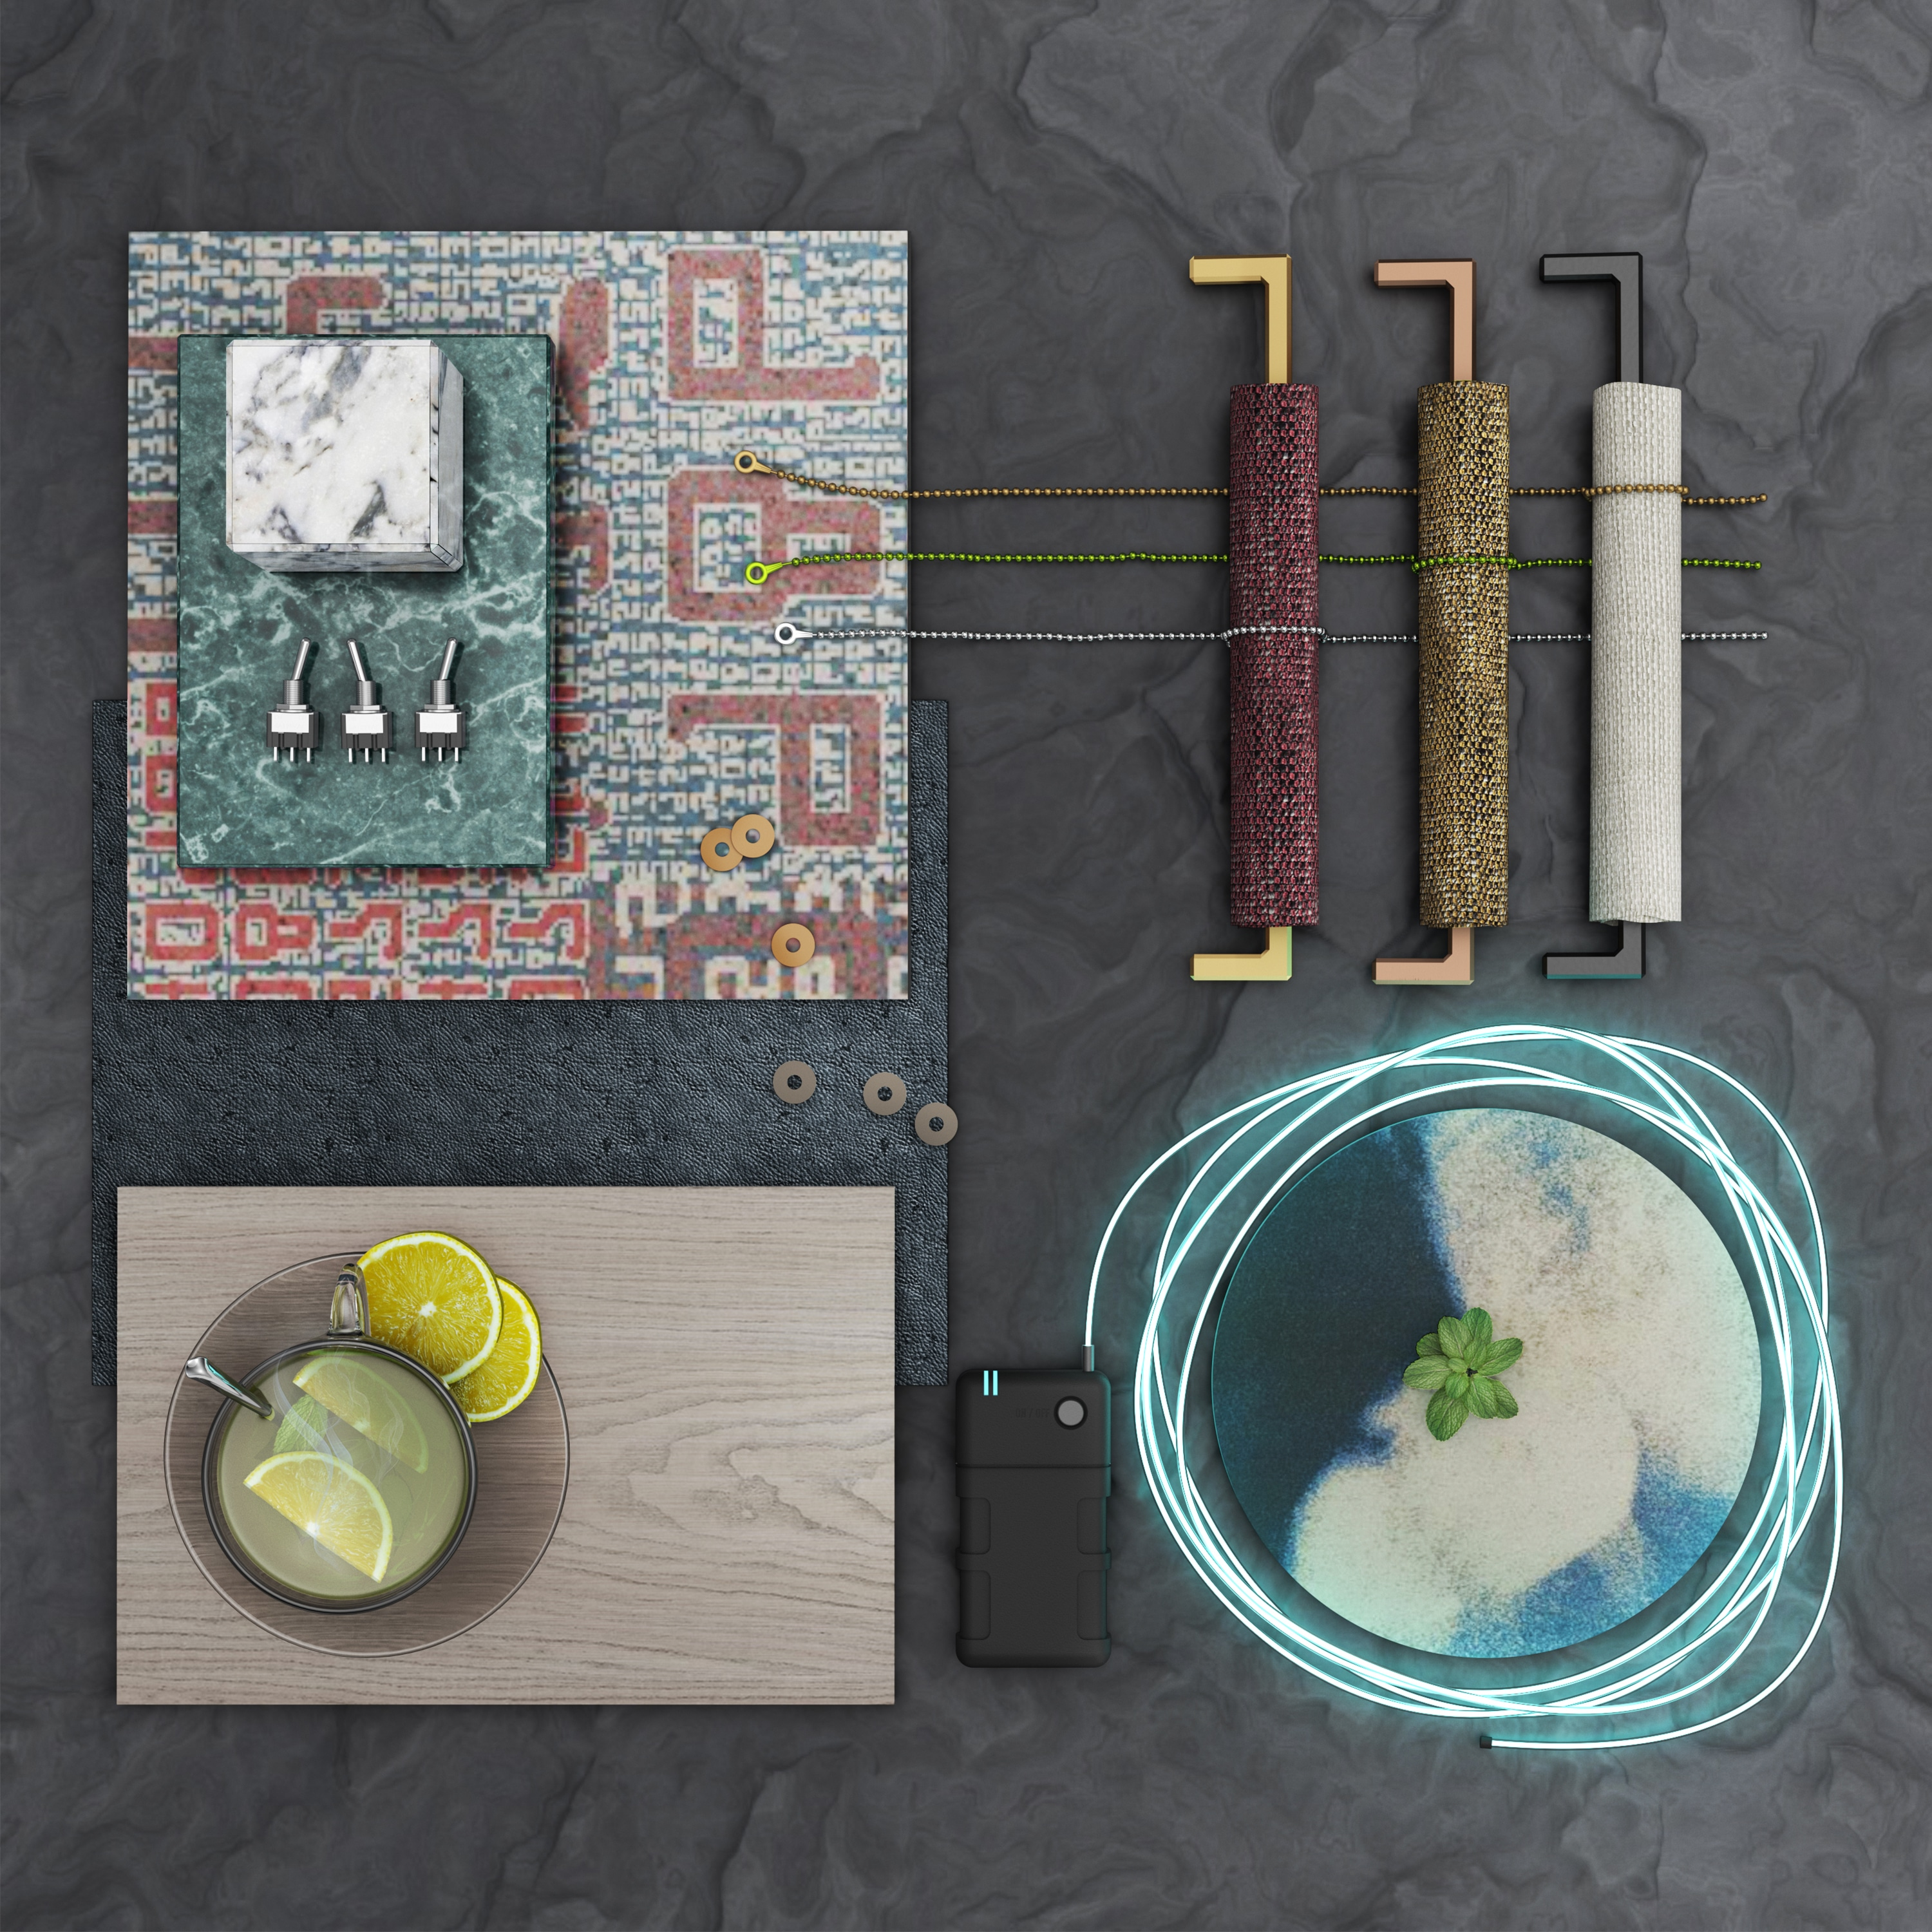 Ege Carpets tech mood board